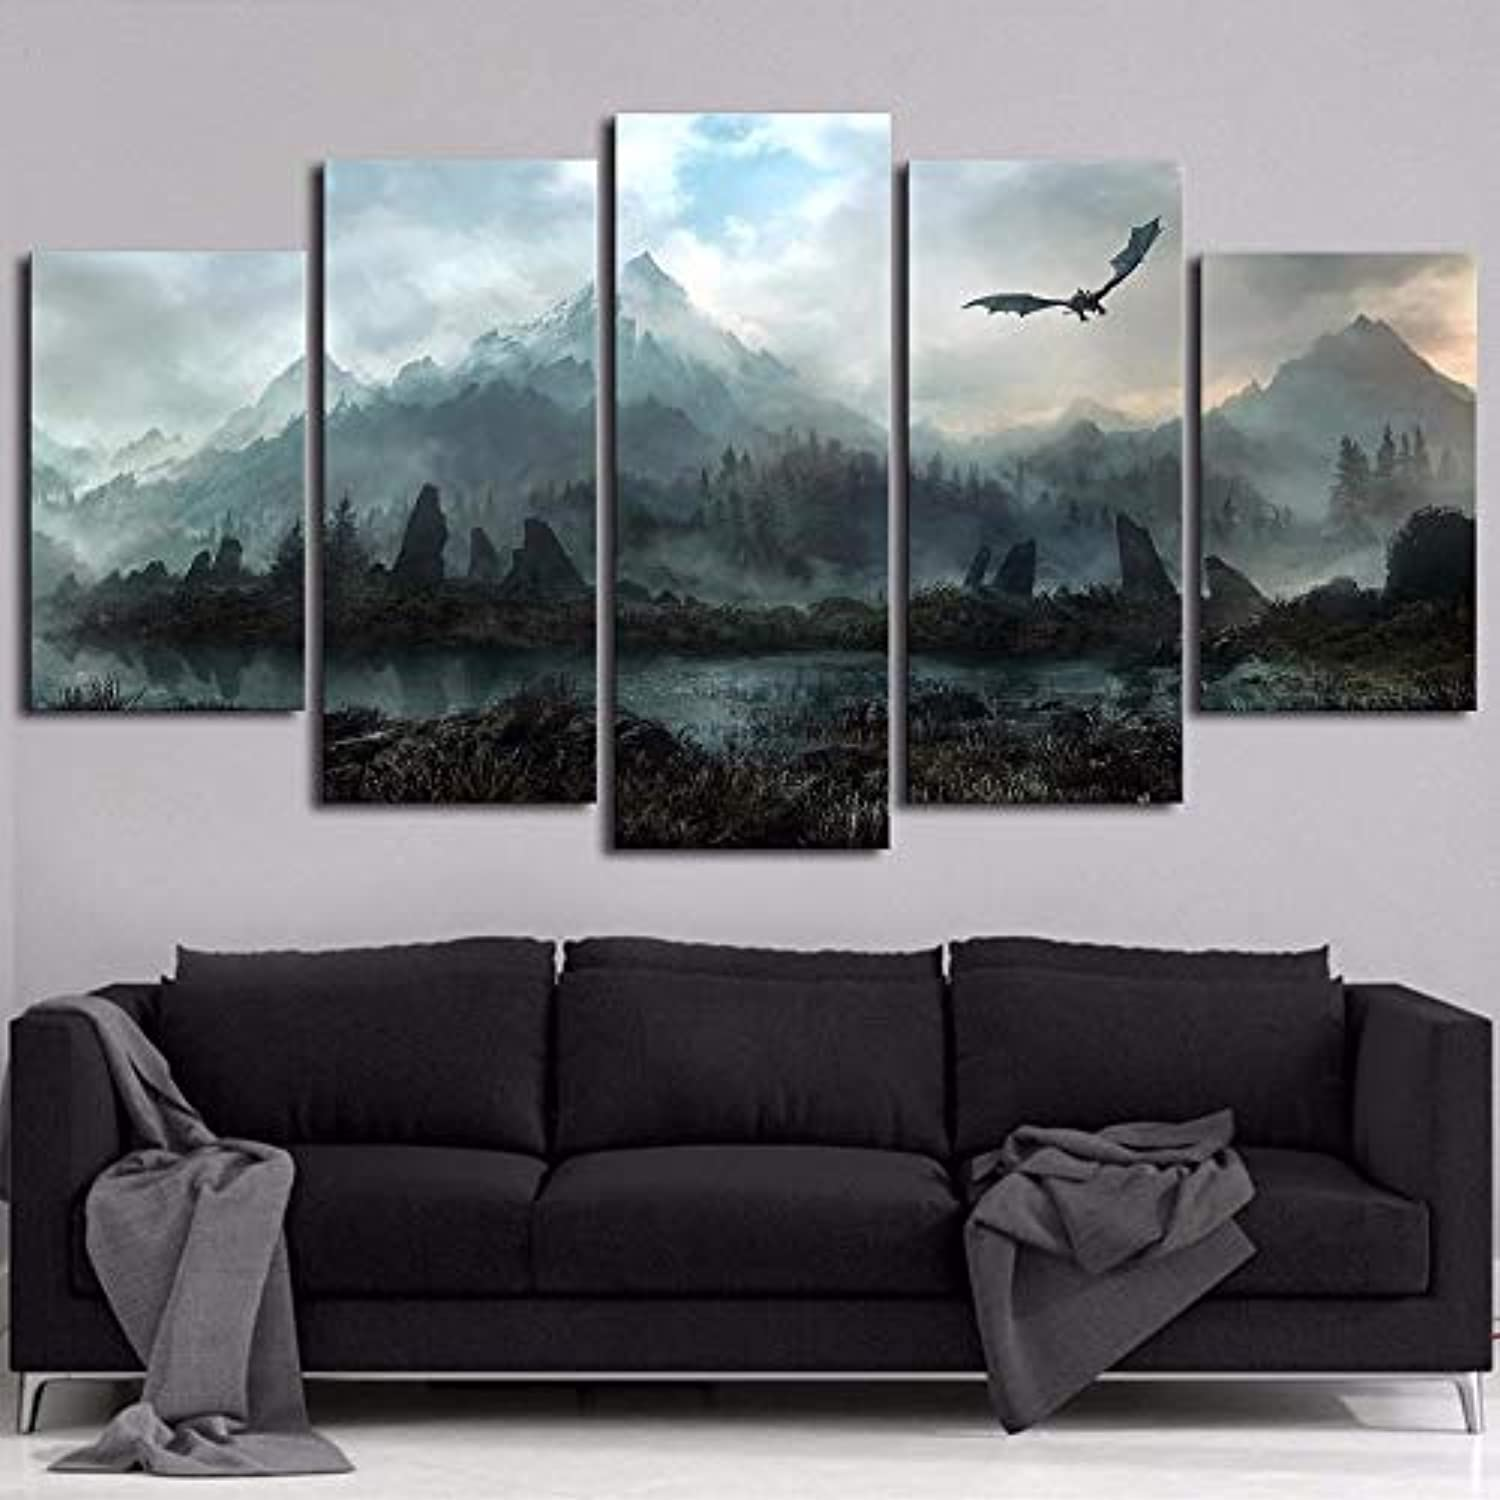 Fashion Home Decoration Paintings On Canvas Wall 5 Panels Mountain Modular Vintage Pictures for Living Room HD Printed